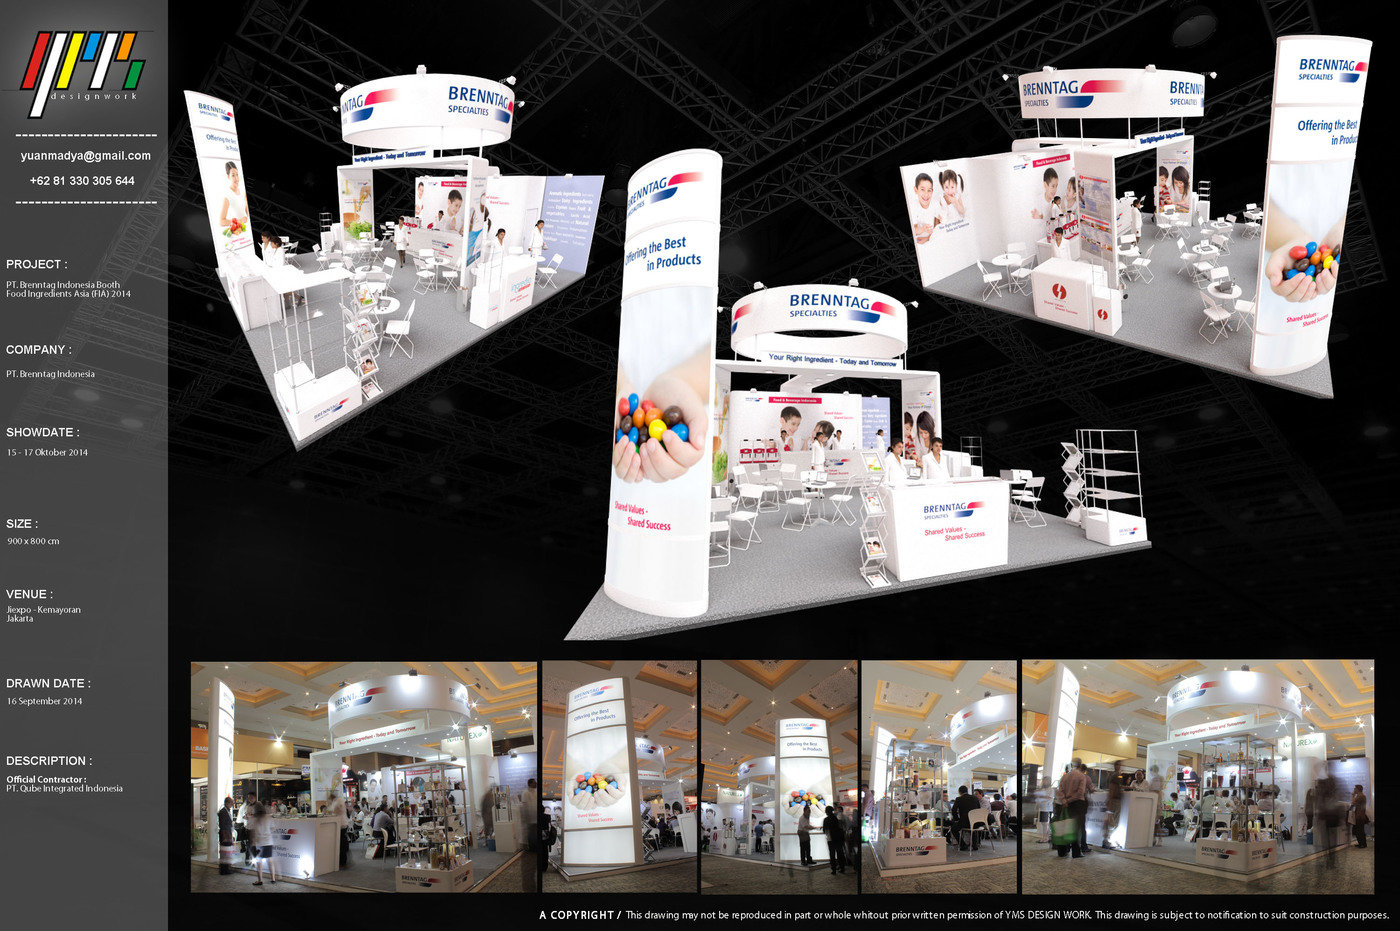 Brenntag Indonesia Exhibition Booth by Yuan Madya Saputra at